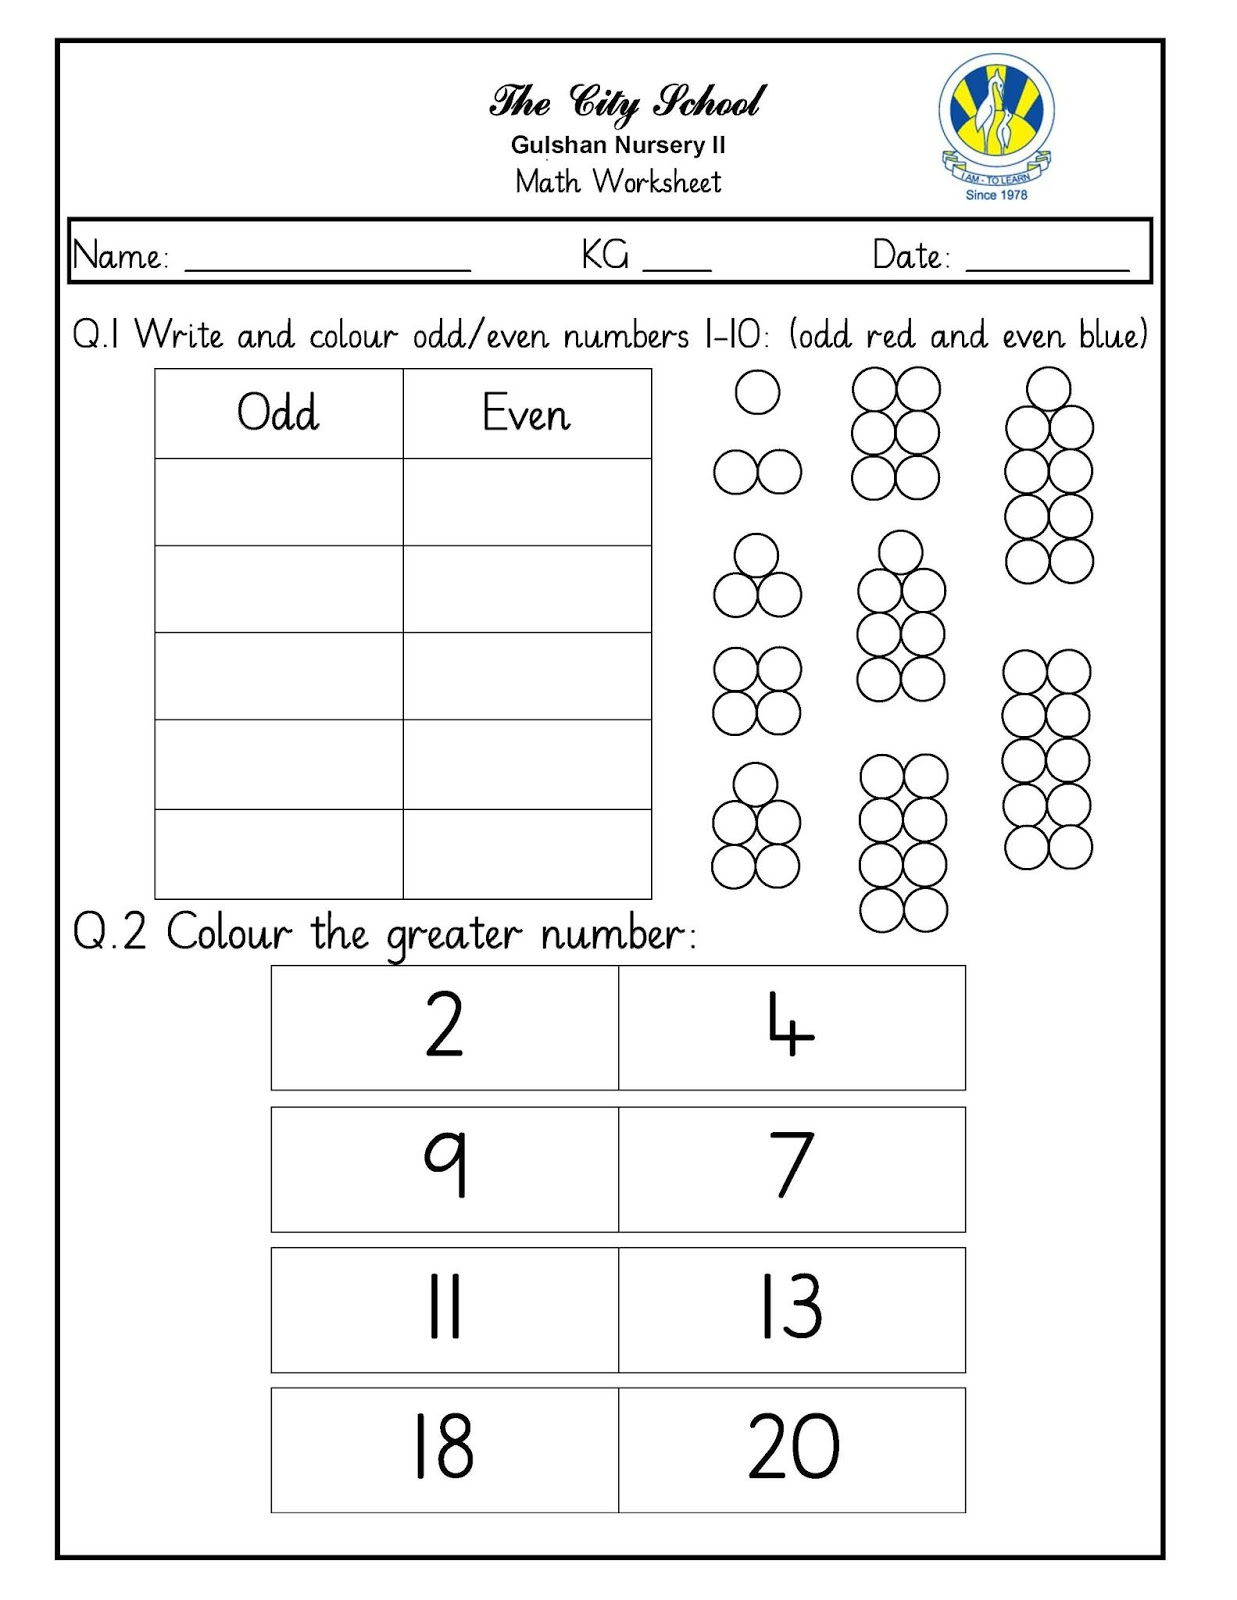 Sr Gulshan The City Nursery Ii Math Urdu And Colouring Worksheets